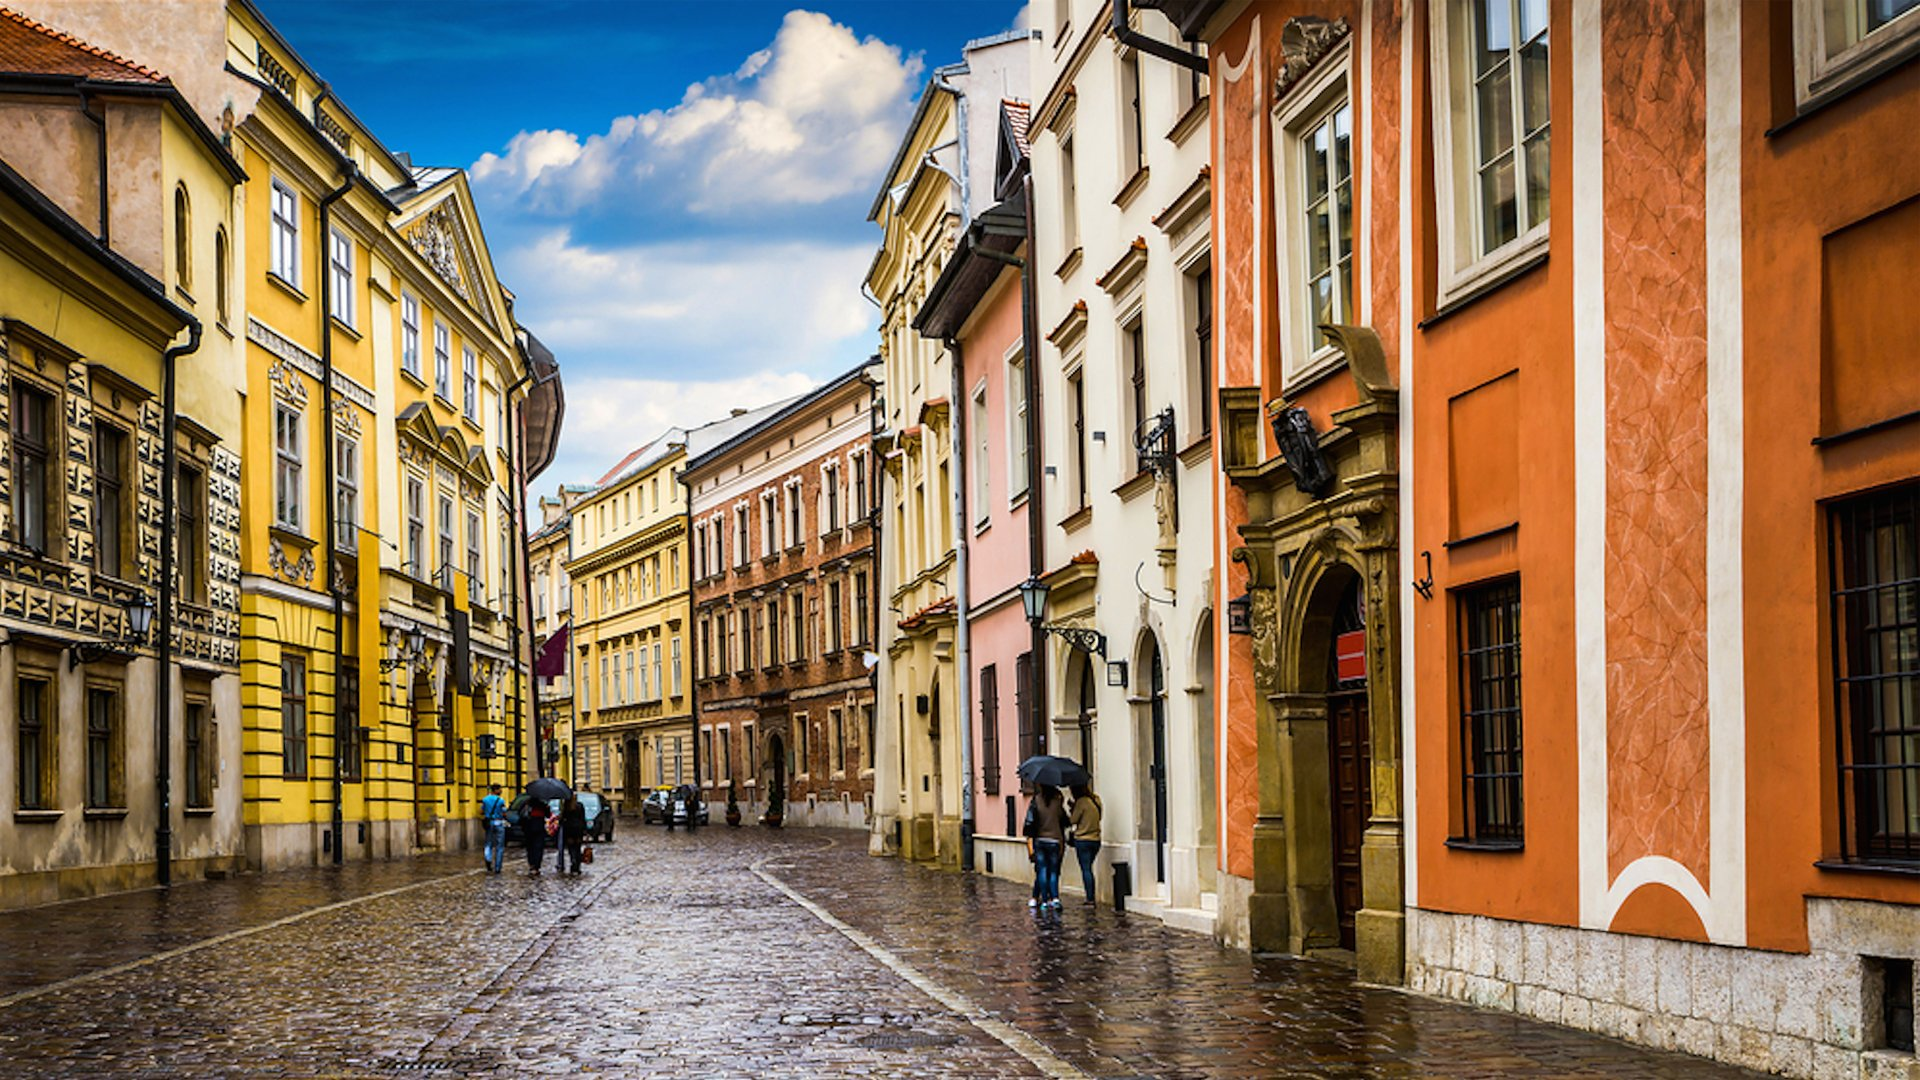 Krakow Wallpapers High Quality Download 1920x1080